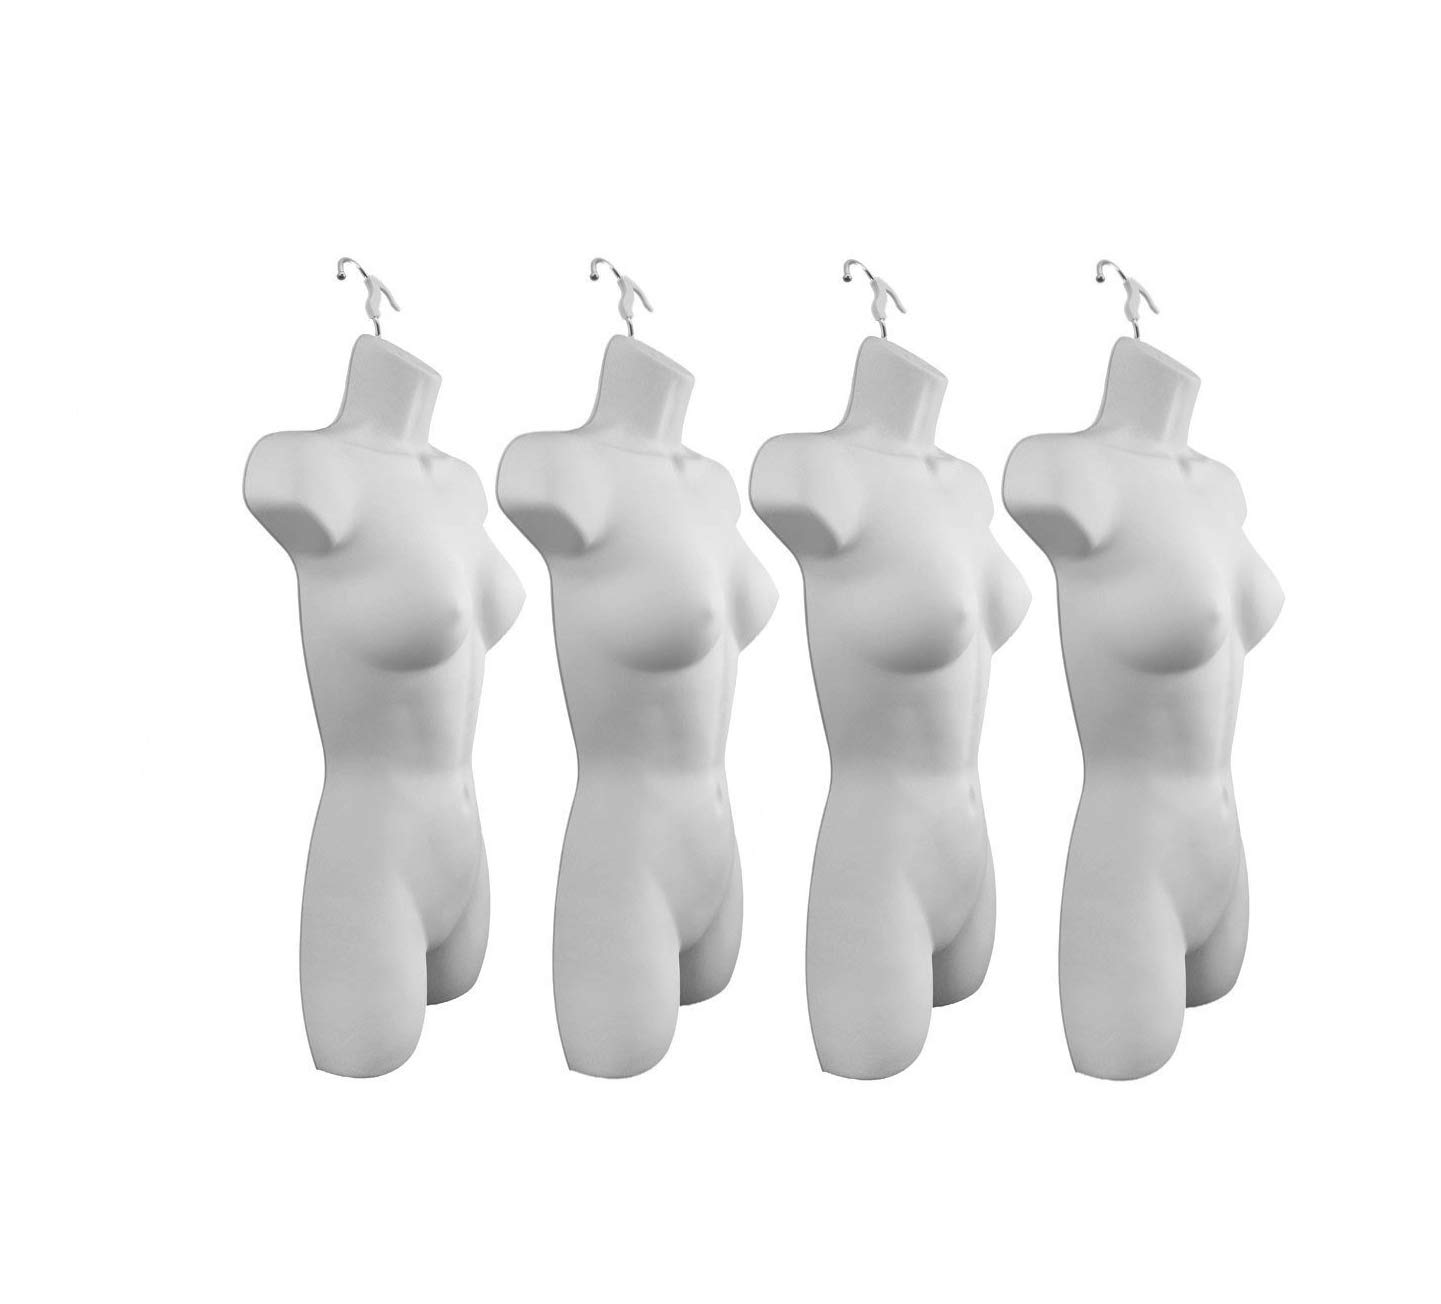 Only Hangers Set of Four Women's Torso Female Plastic Hanging Mannequin Body Forms in White - Pack of (4)